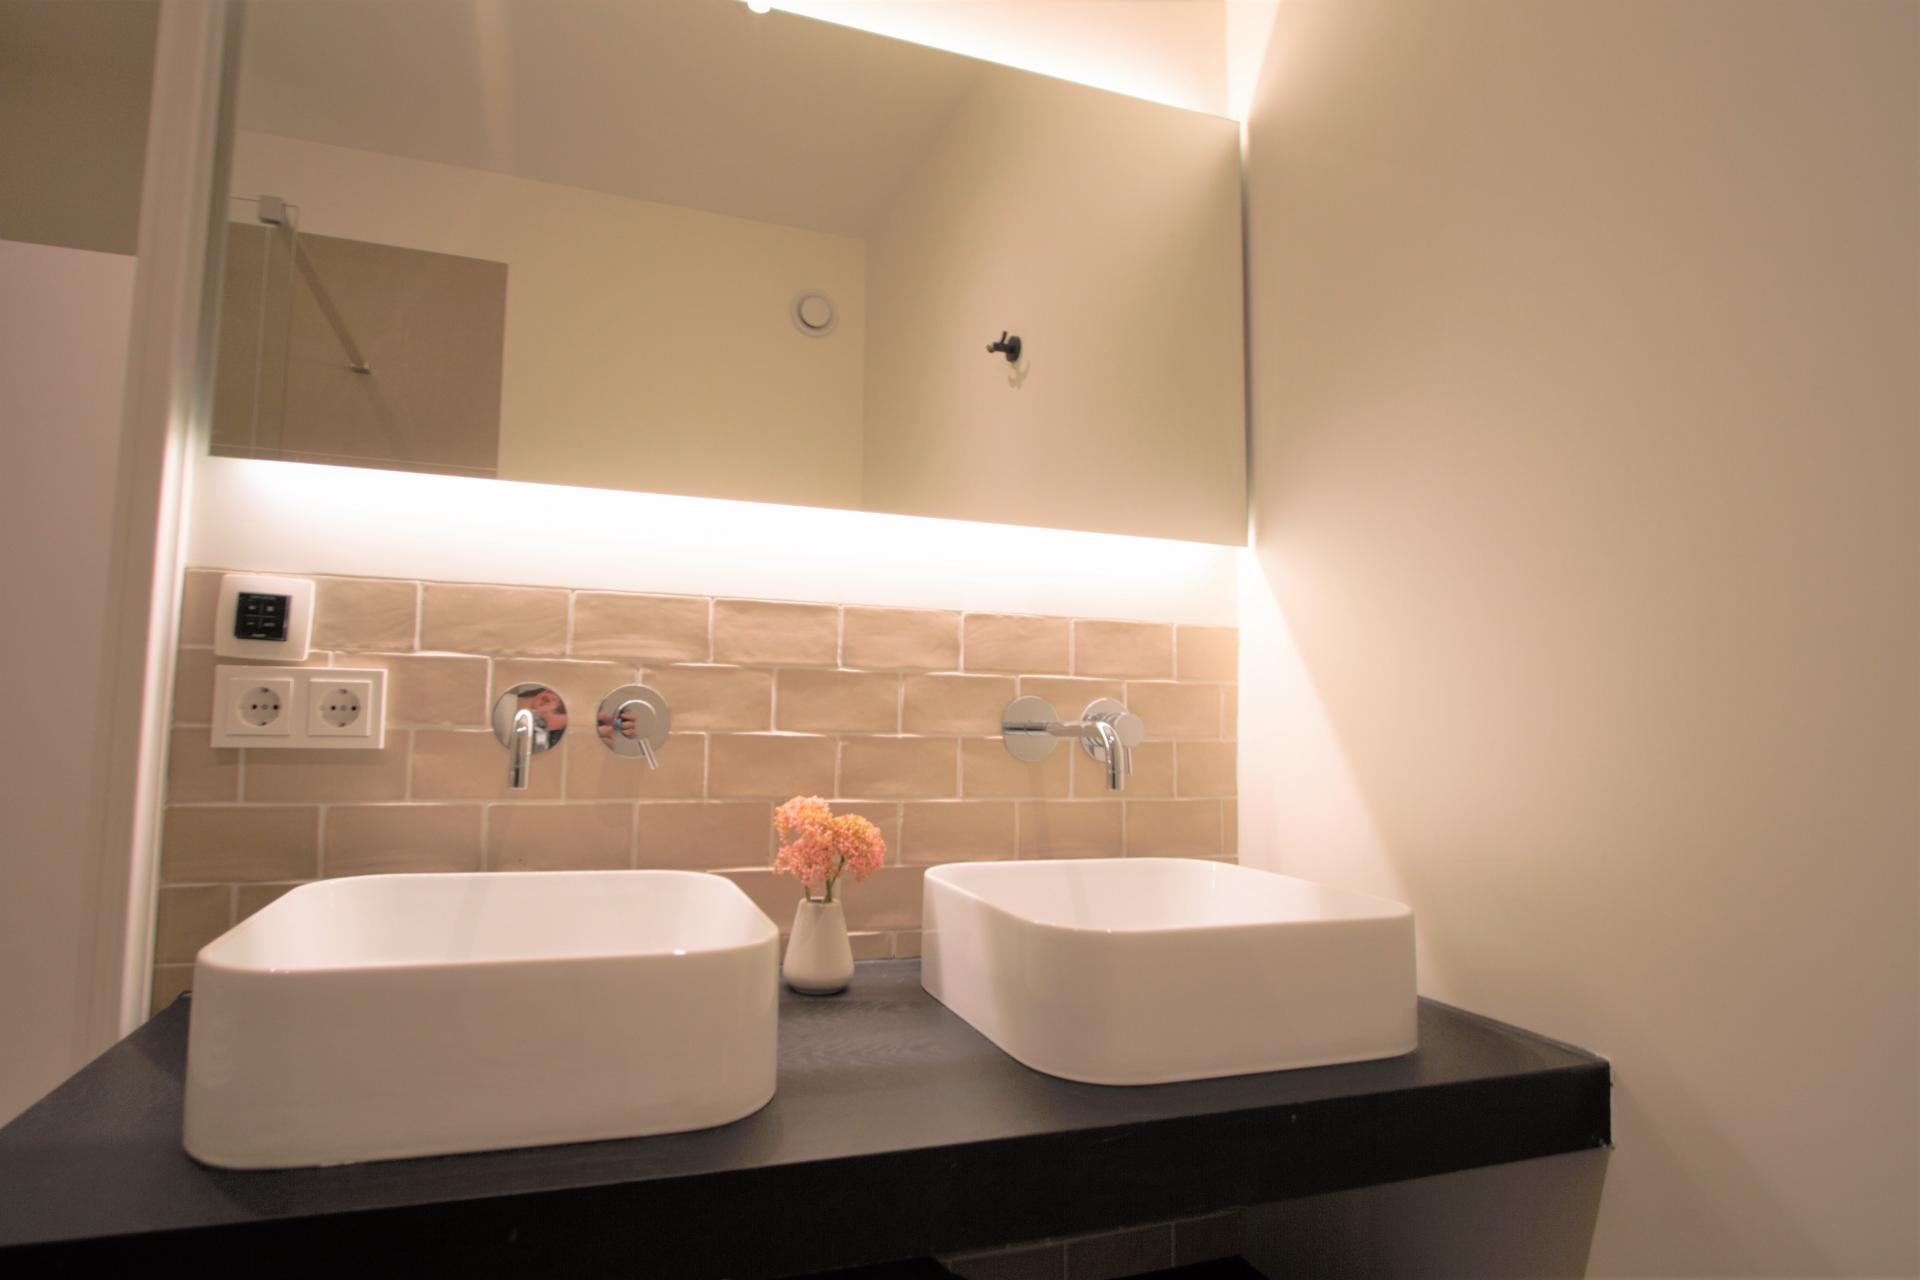 Sinks at Frederiks Square Serviced Apartments, Amsterdam